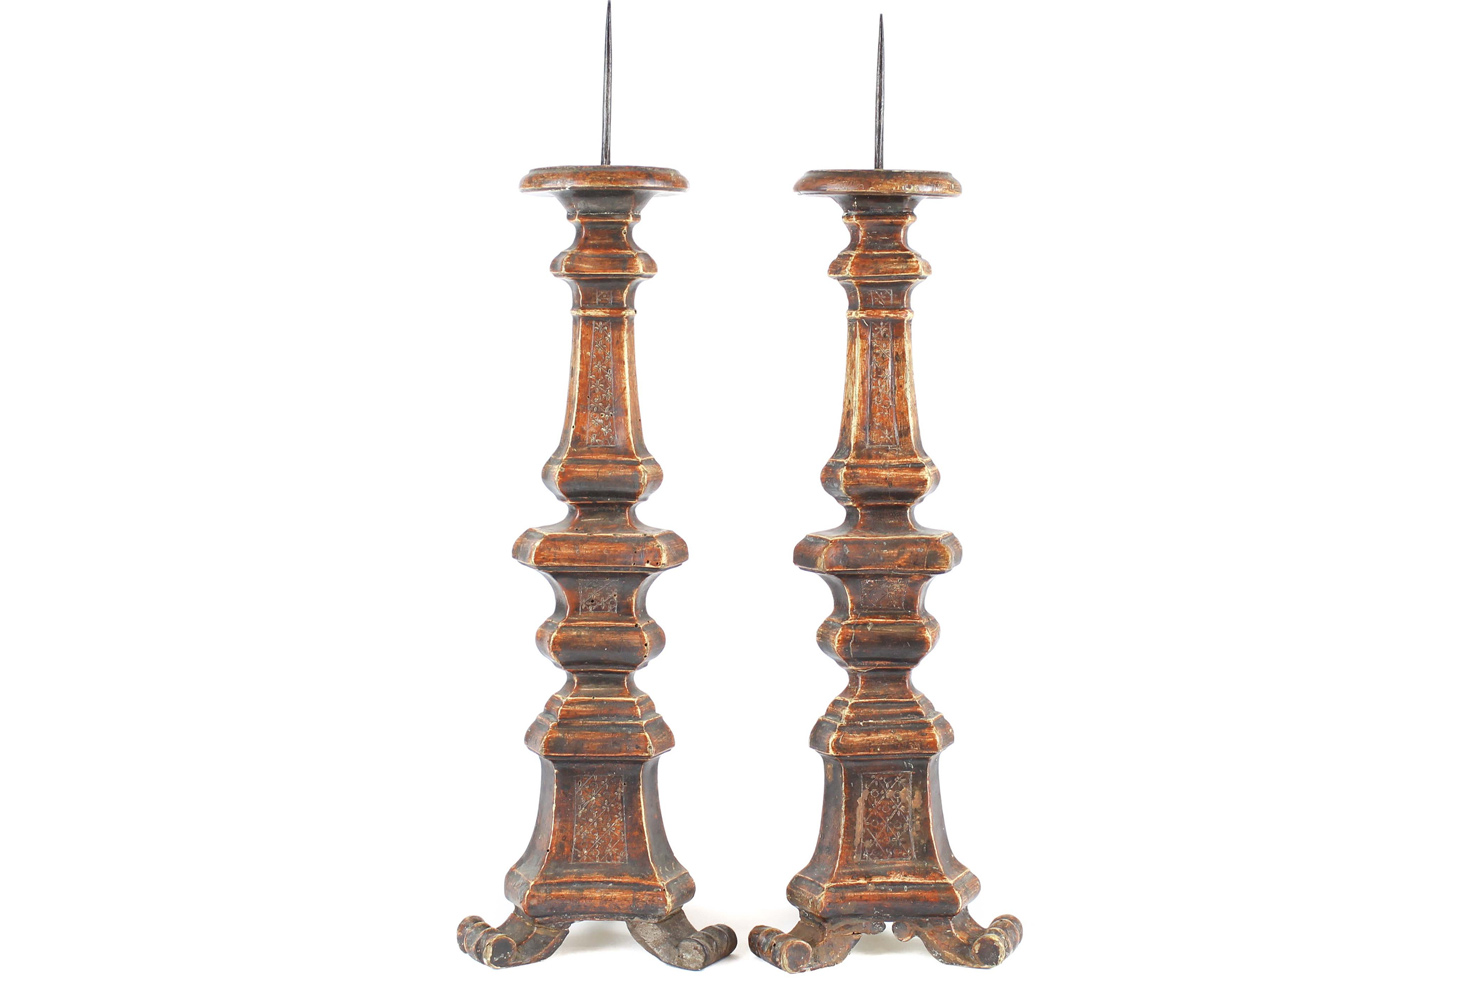 Antique italian altar candlesticks omero home antique italian altar candlesticks reviewsmspy